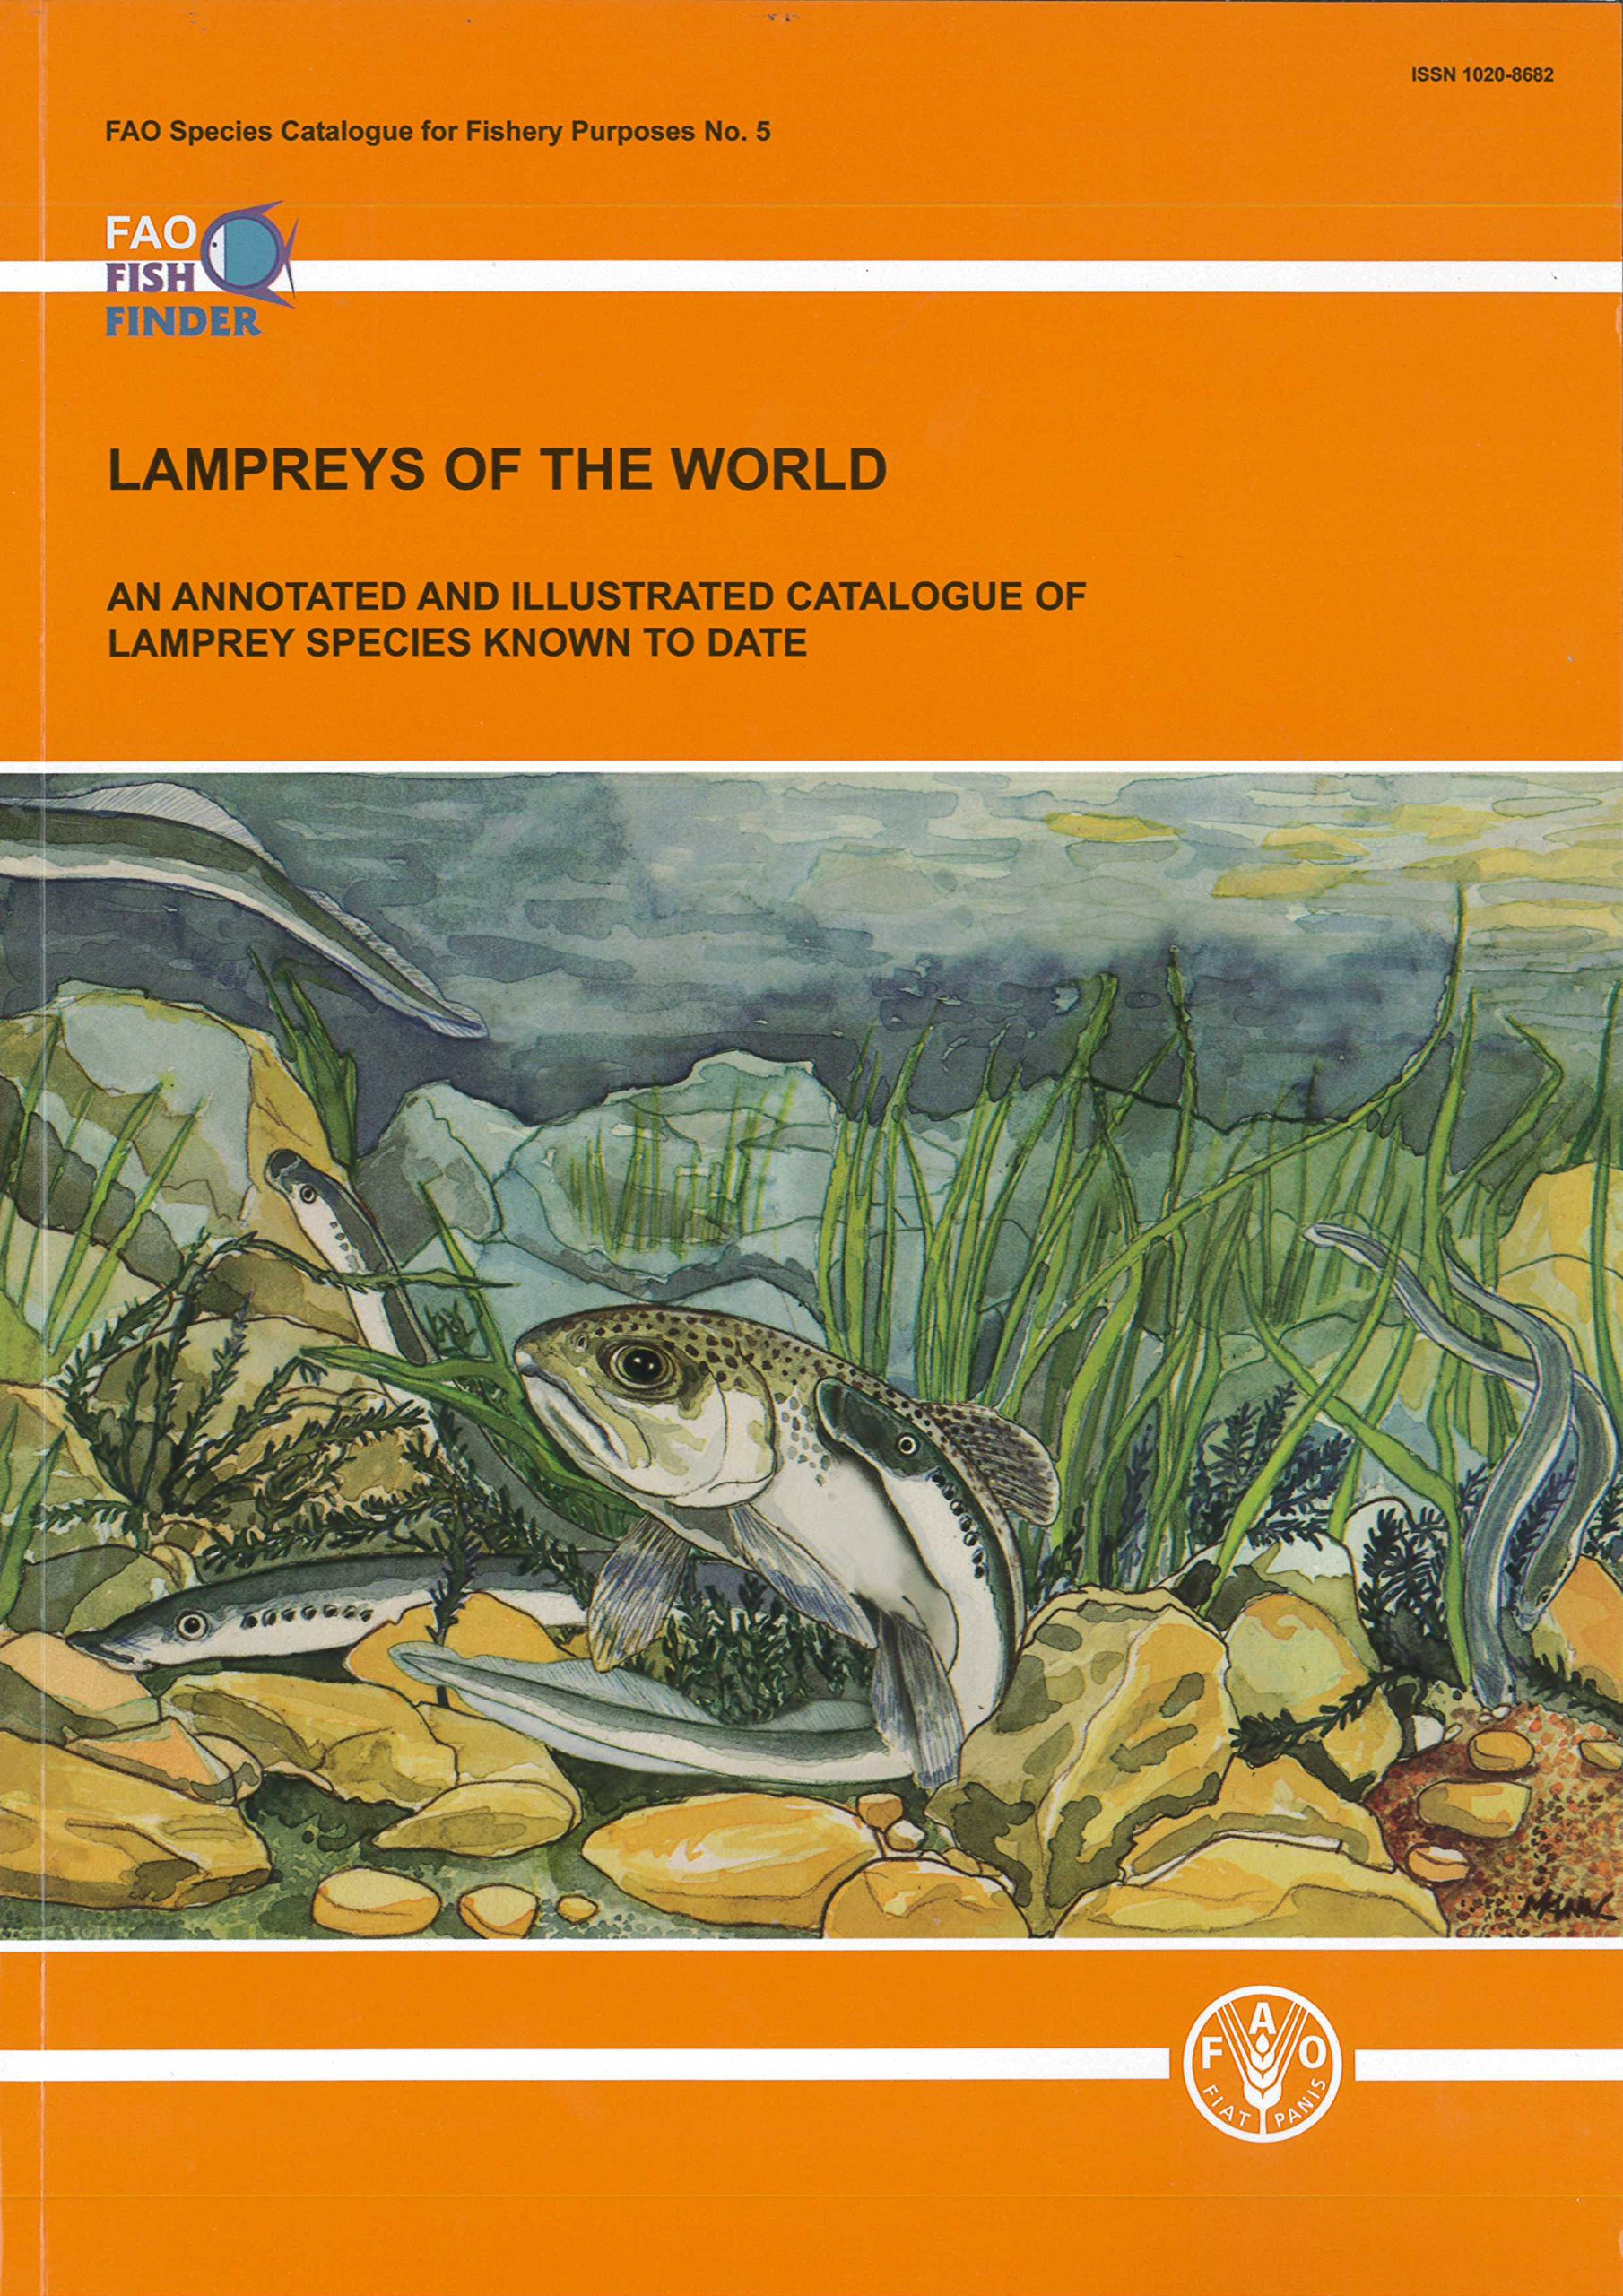 Download Lampreys Of The World: An Annotated And Illustrated Catalogue Of Lamprey Species Known To Date: FAO Species Catalogue For Fisheries Purposes No. 5 PDF